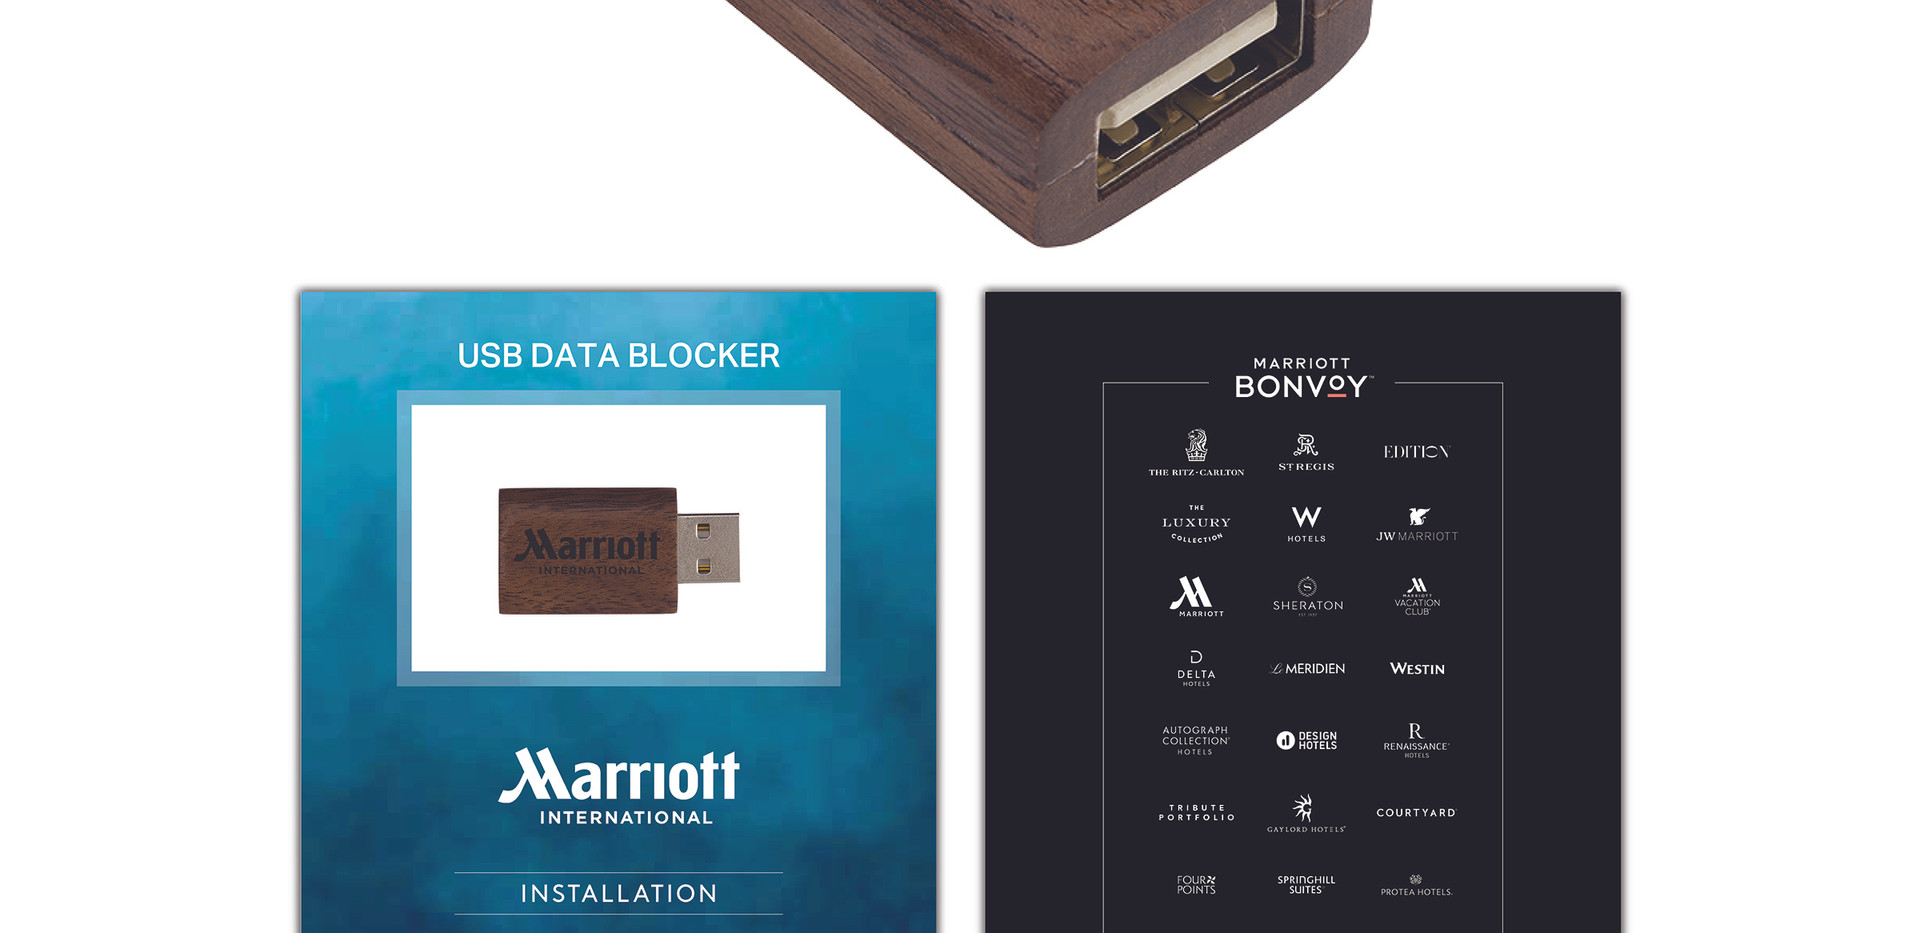 Marriott USDB Walnut Custom Card.jpg